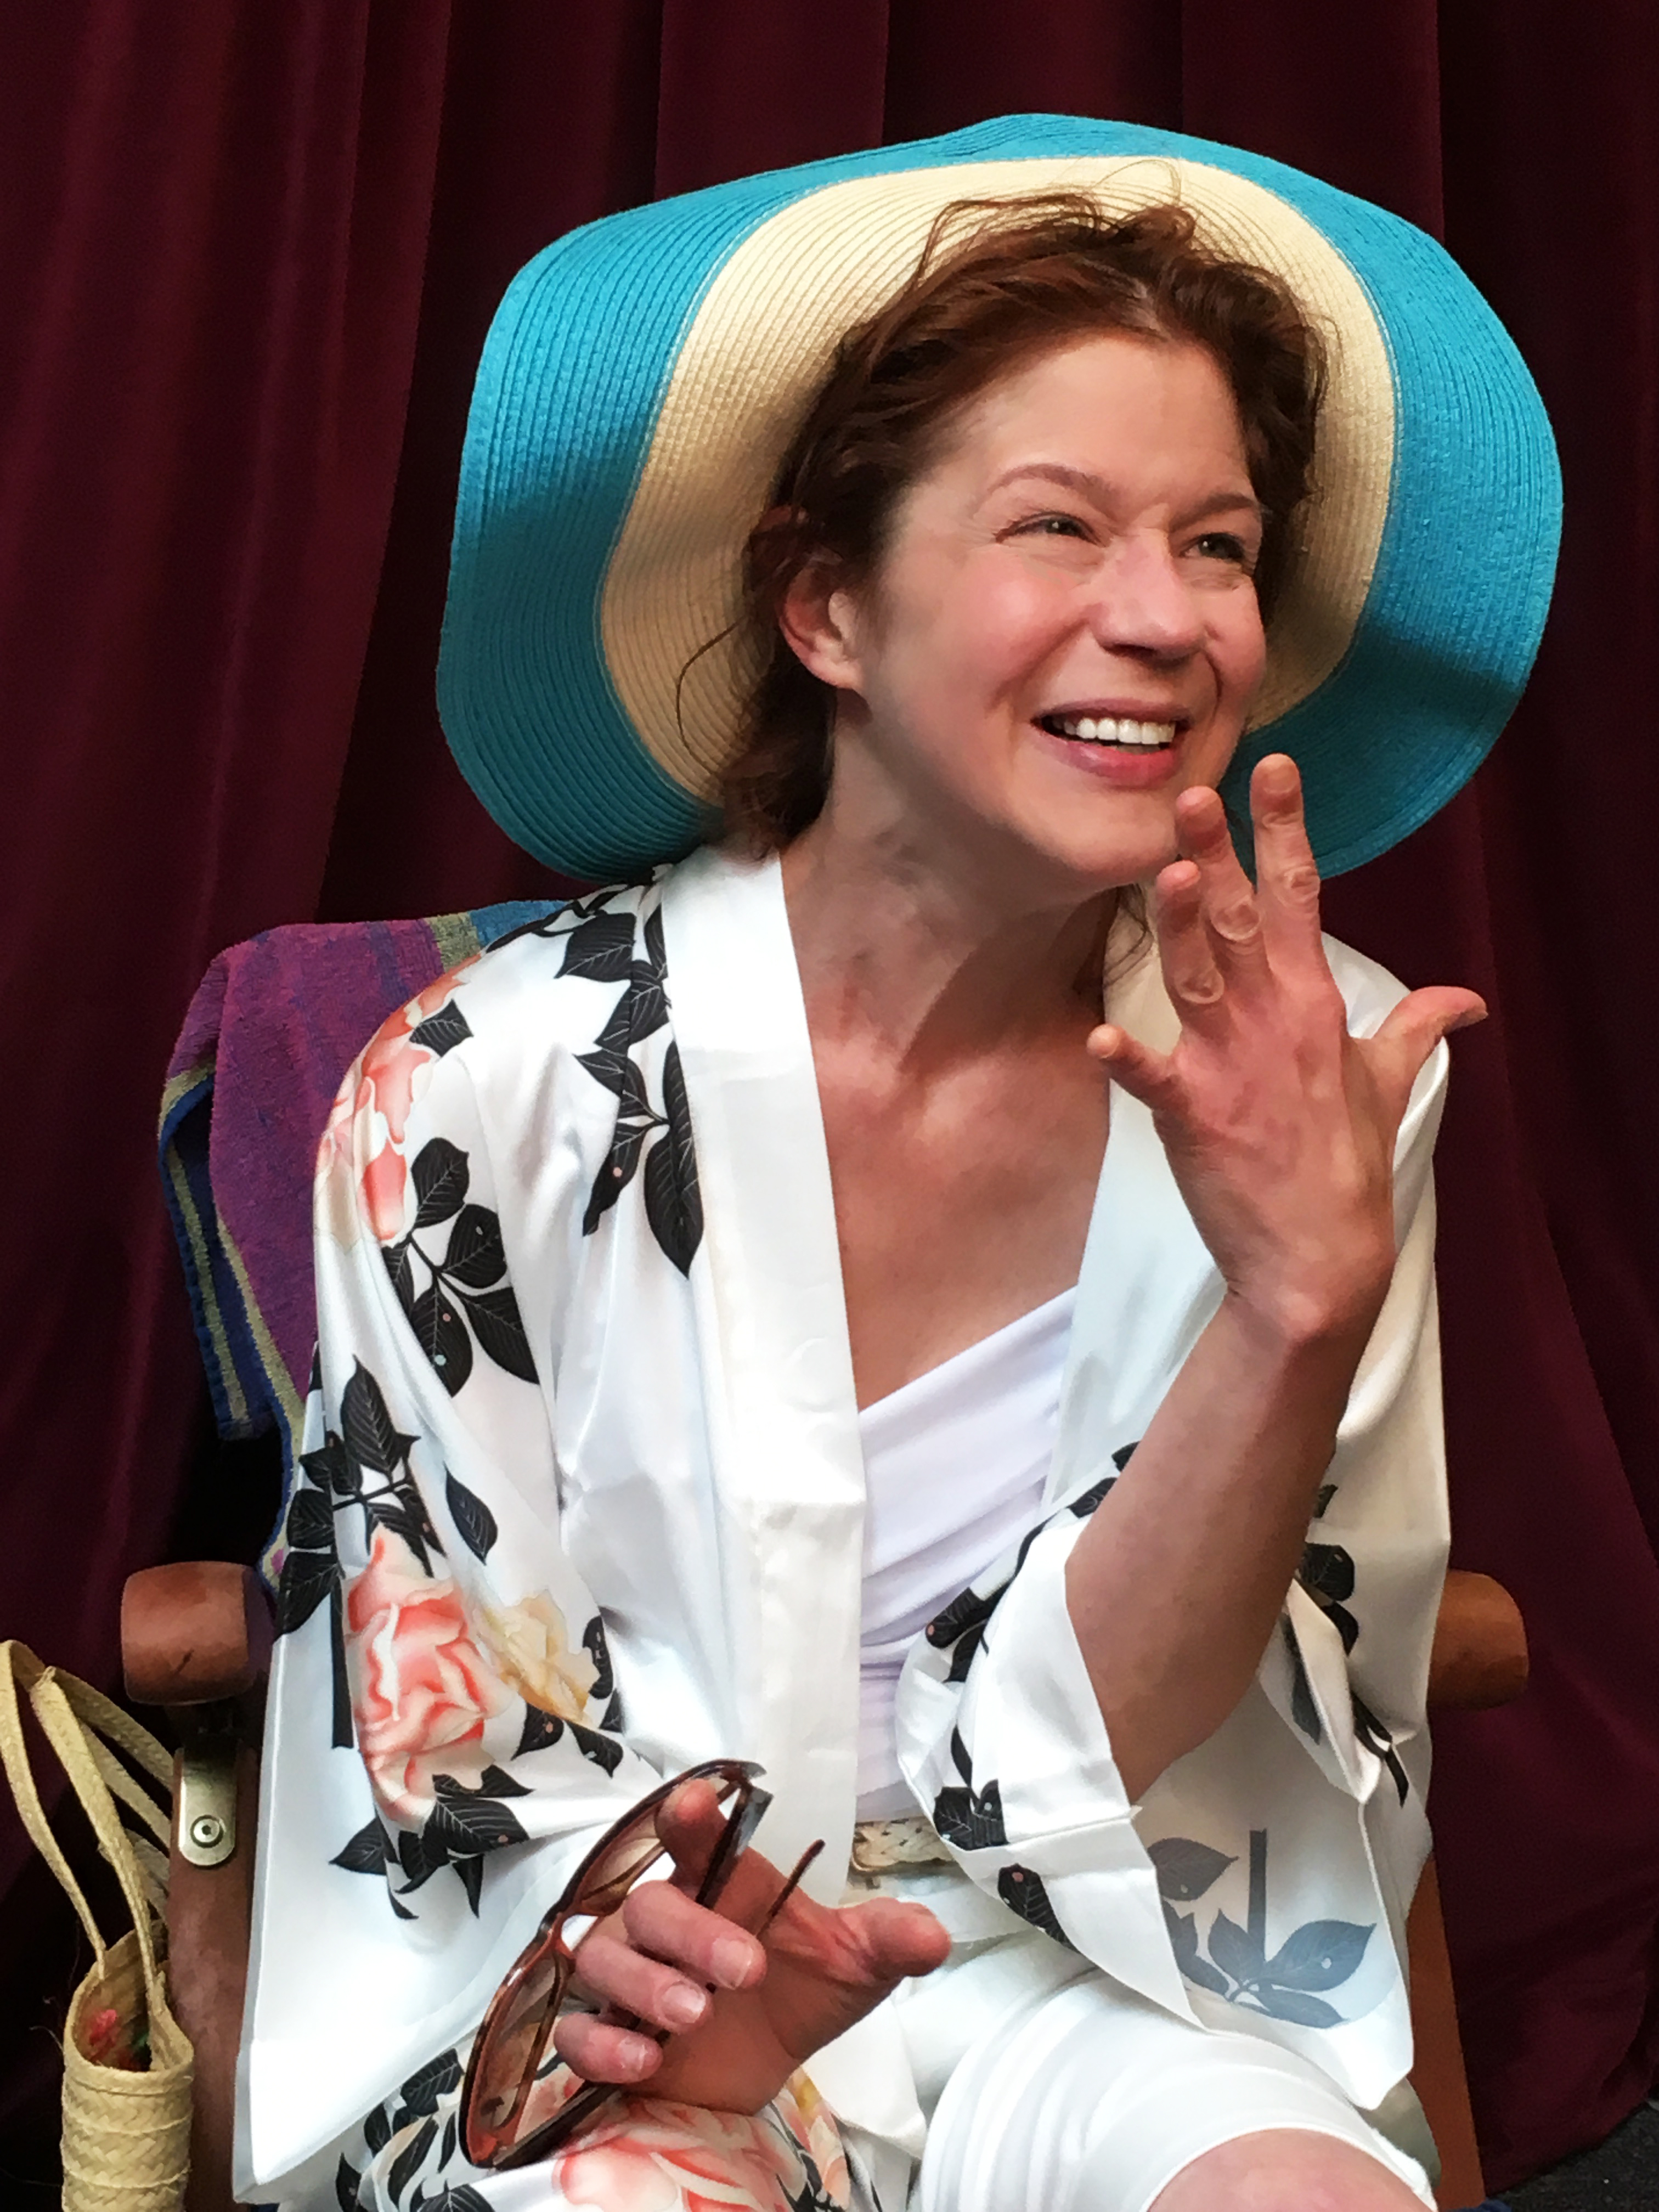 """The hat, the hat! Clad in crowning glory, lonesome Shirley (Karen Baum) sees brighter days ahead in PICT's """"Shirley Valentine."""""""